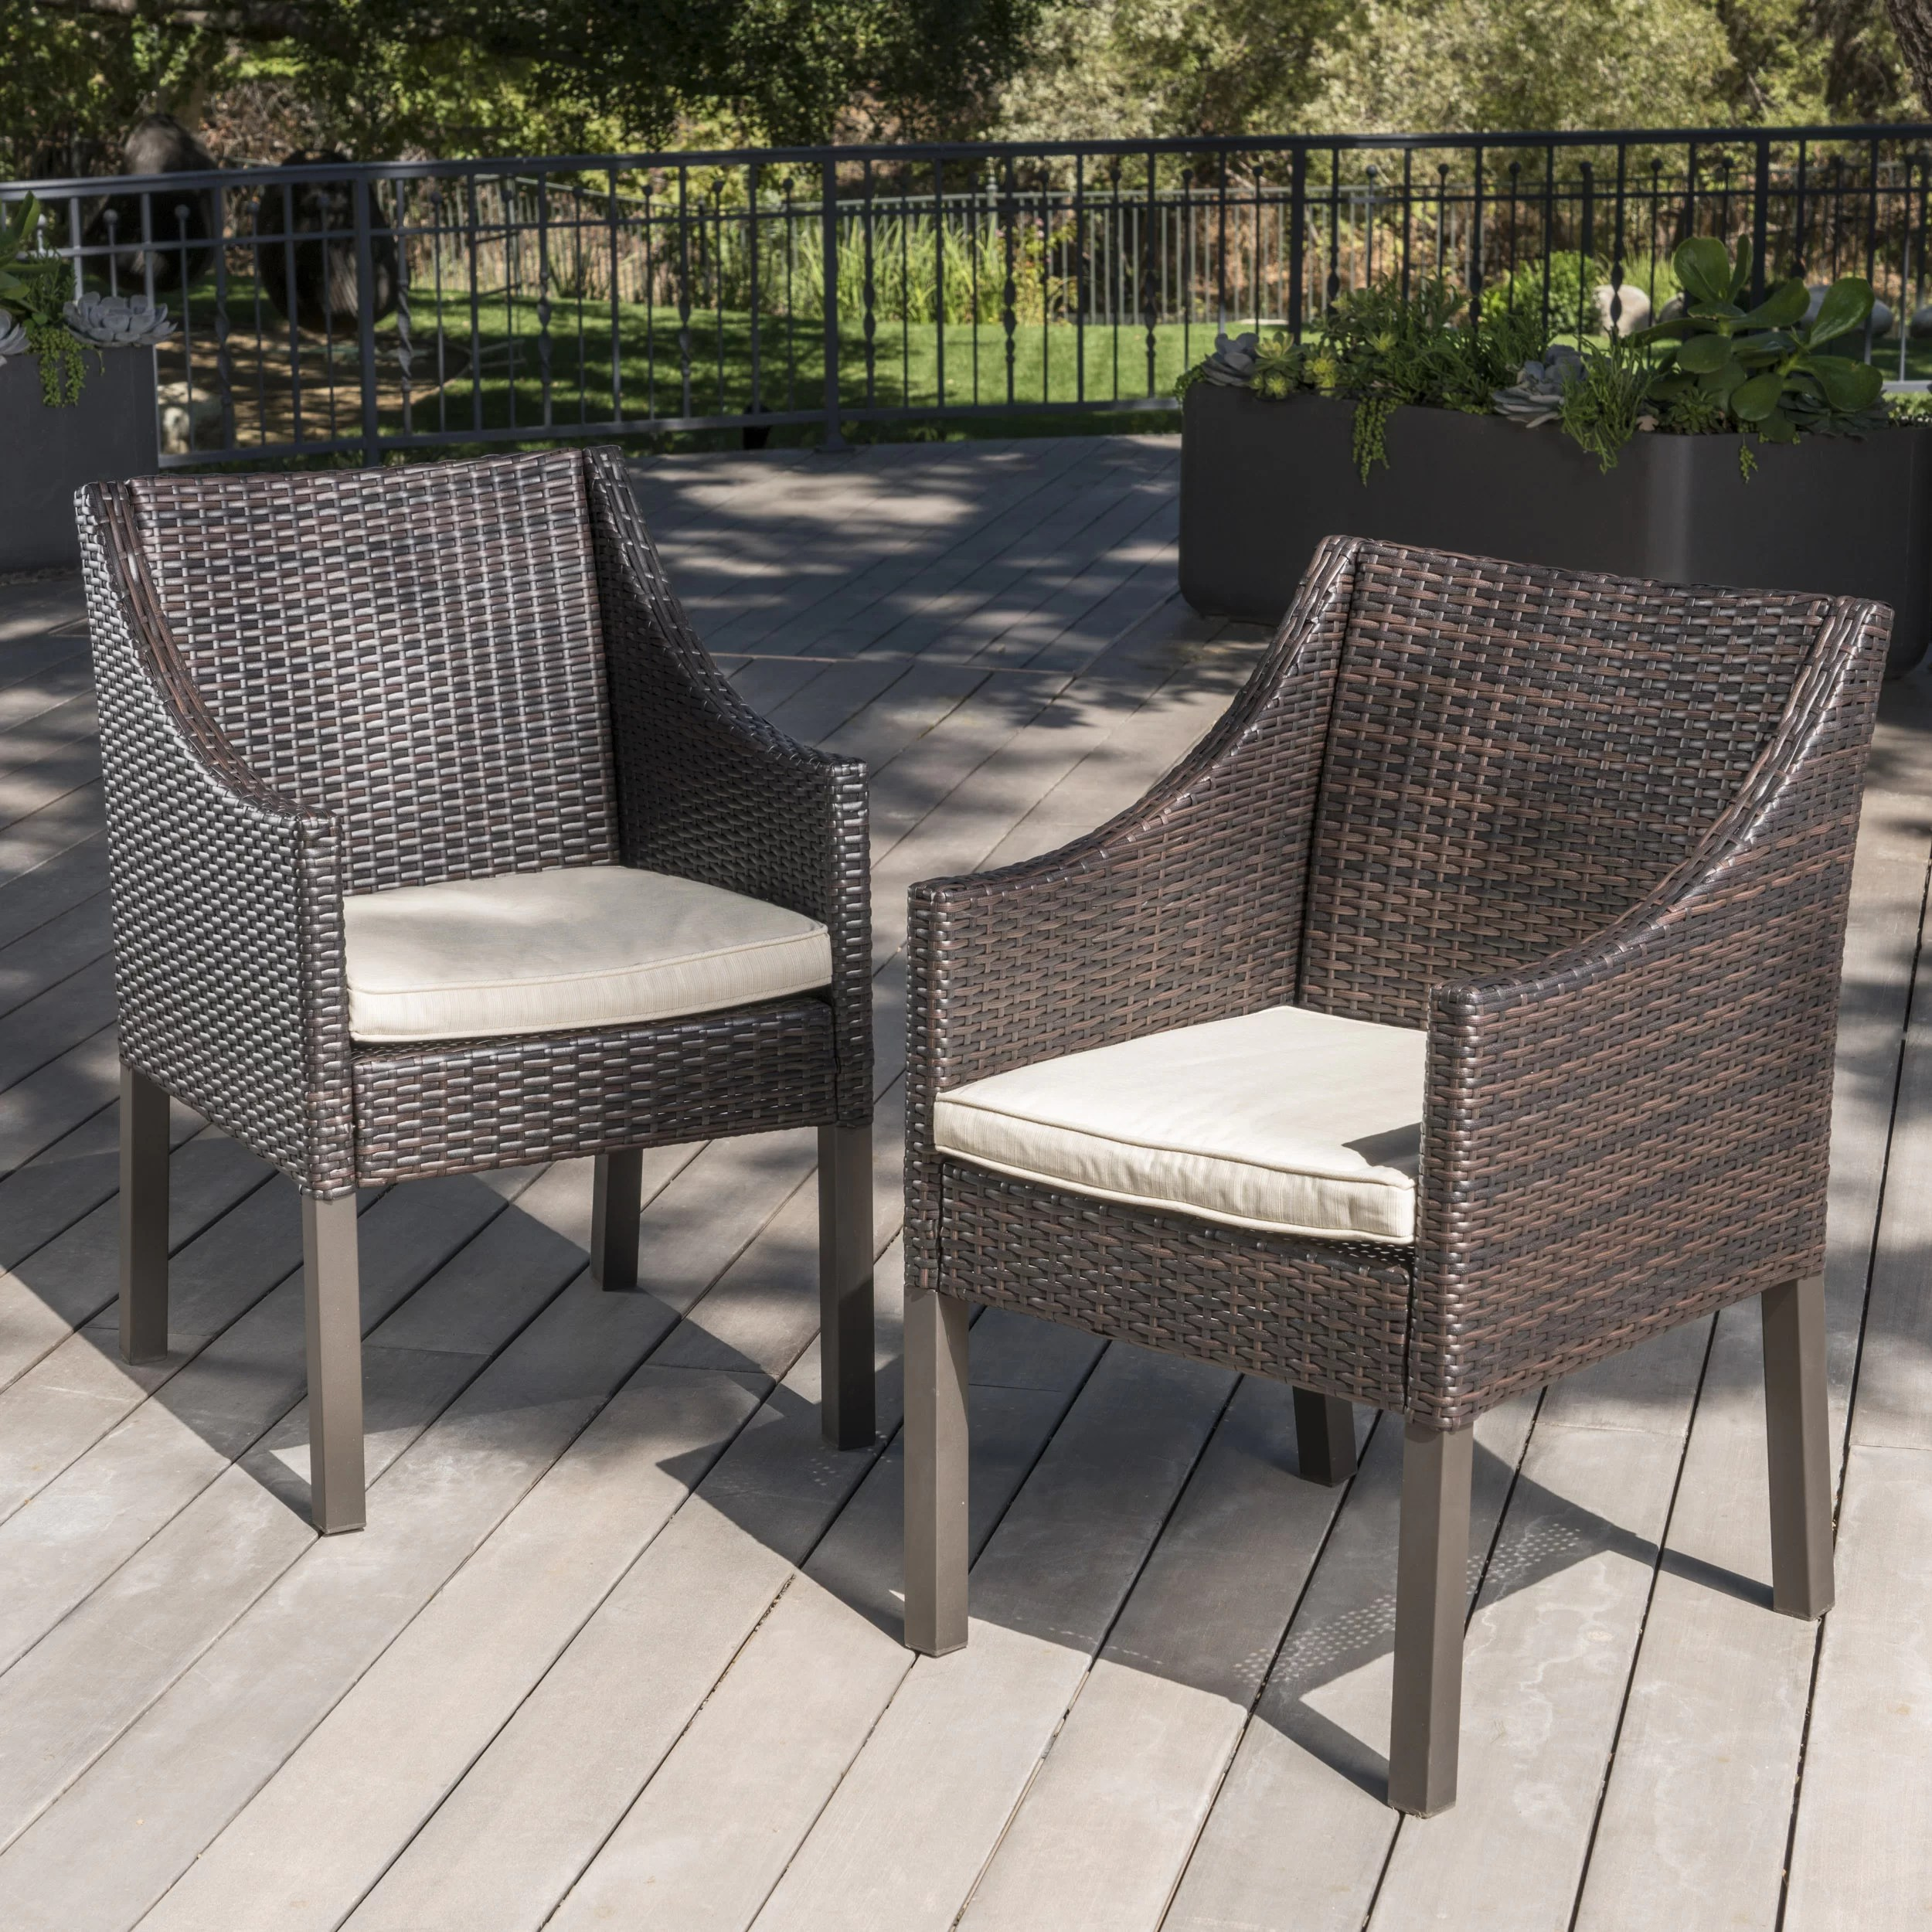 Wicker Outdoor Dining Chairs Arciniega Outdoor Wicker Patio Dining Chair